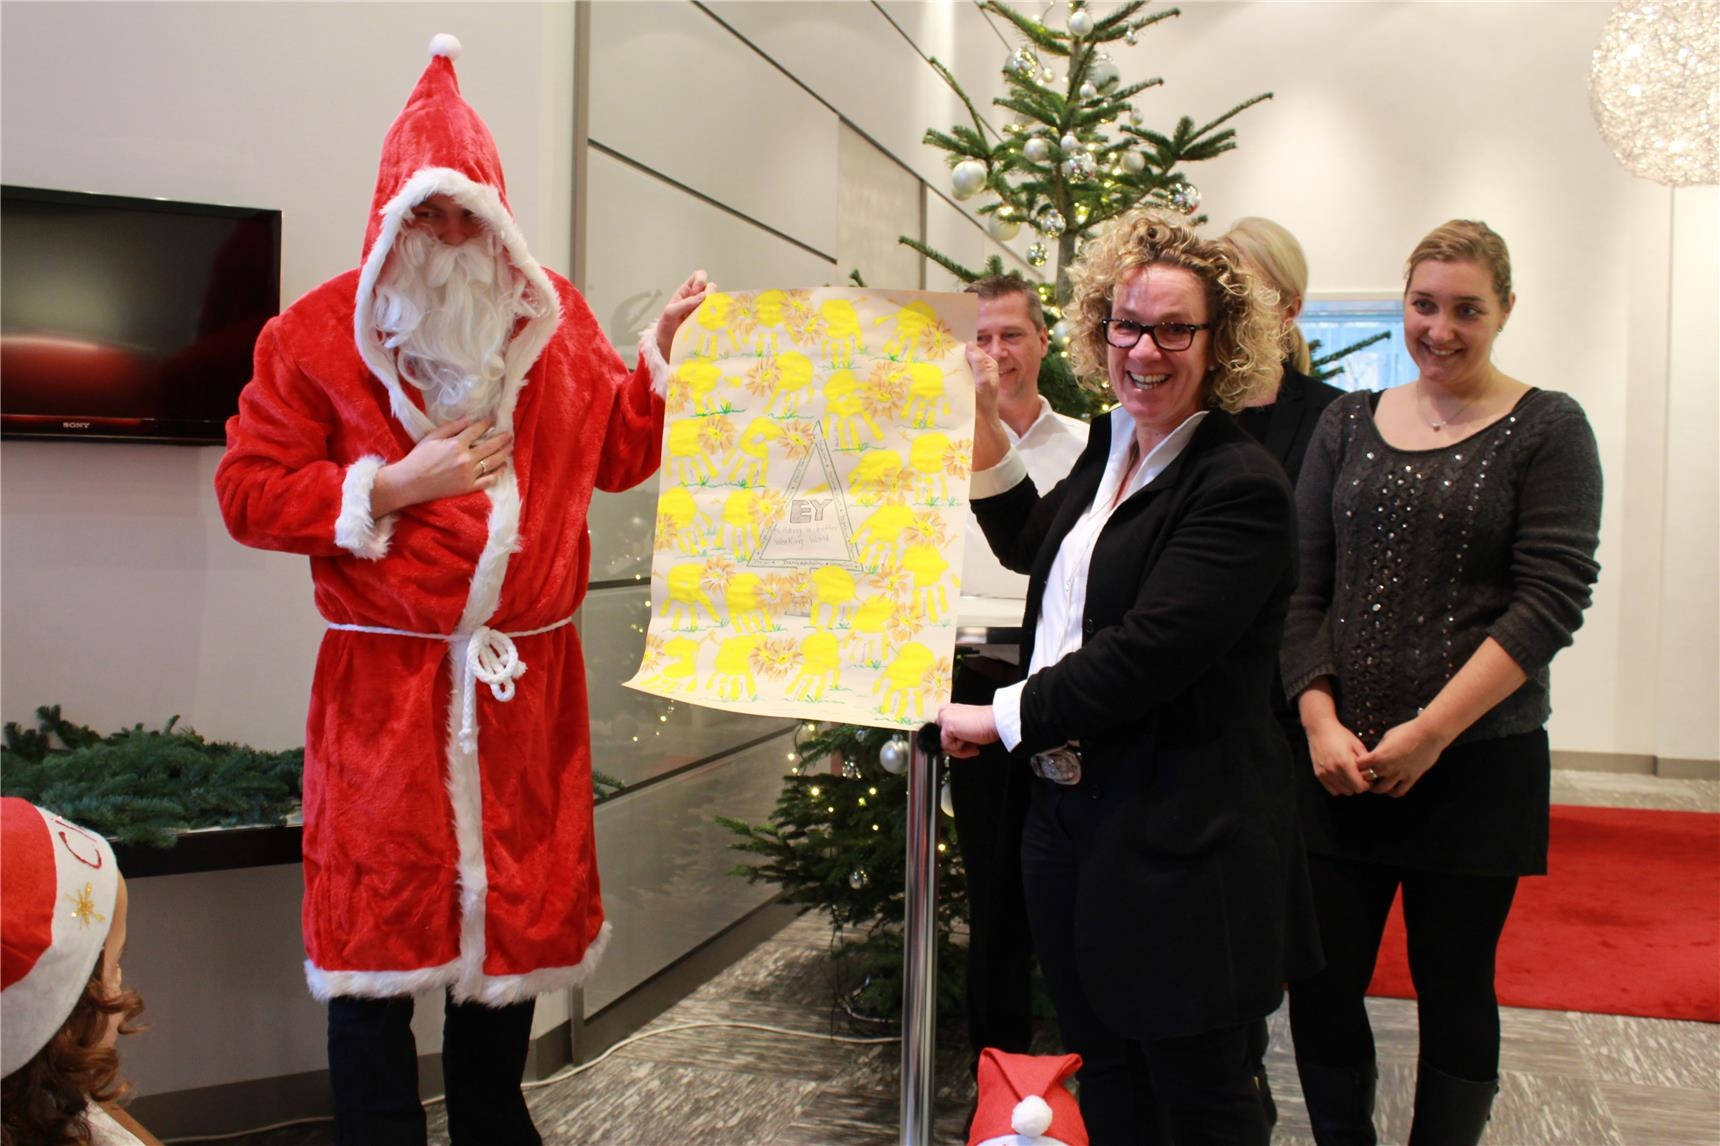 Ernst & Young Weihnachtsaktion - 008 - 2015_12_16_Ernst&Young_St. Godehard_C_Peter Wiezorek (73) (Kemper)